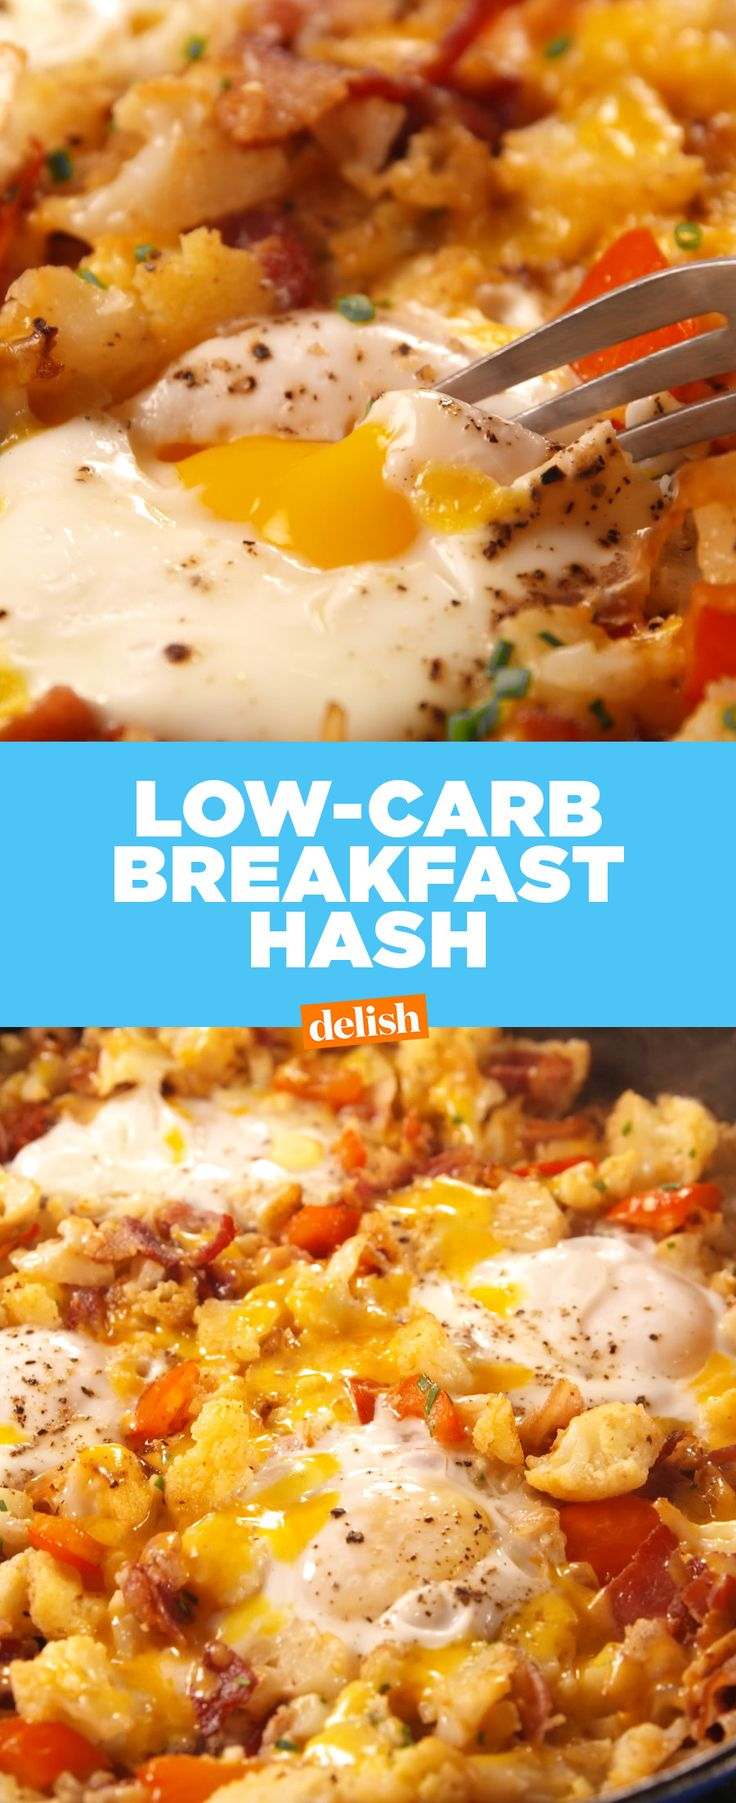 Low-Carb vs High-Carb For Type 2 Diabetes